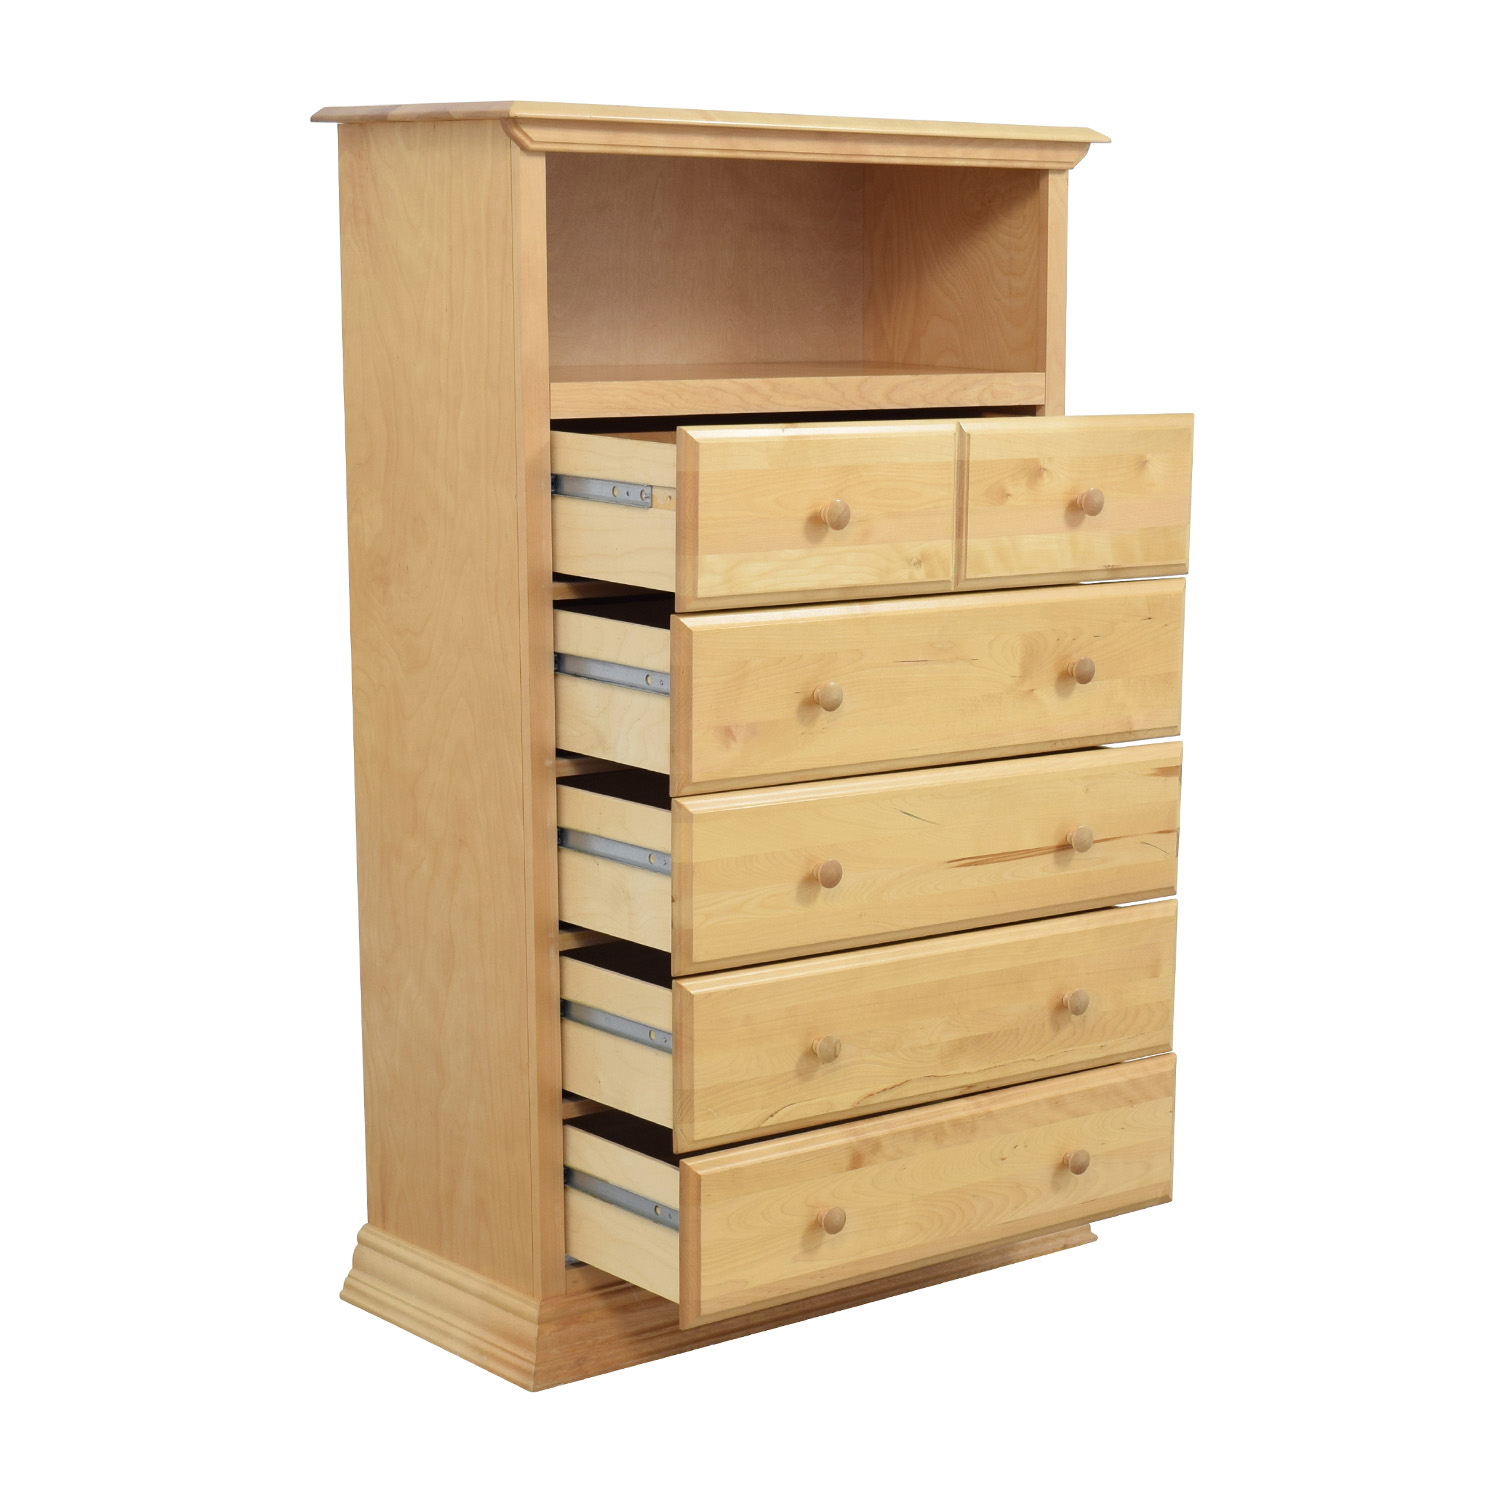 Bellini Bellini Baby Domani Five-Drawer Dresser in Natural Wood coupon